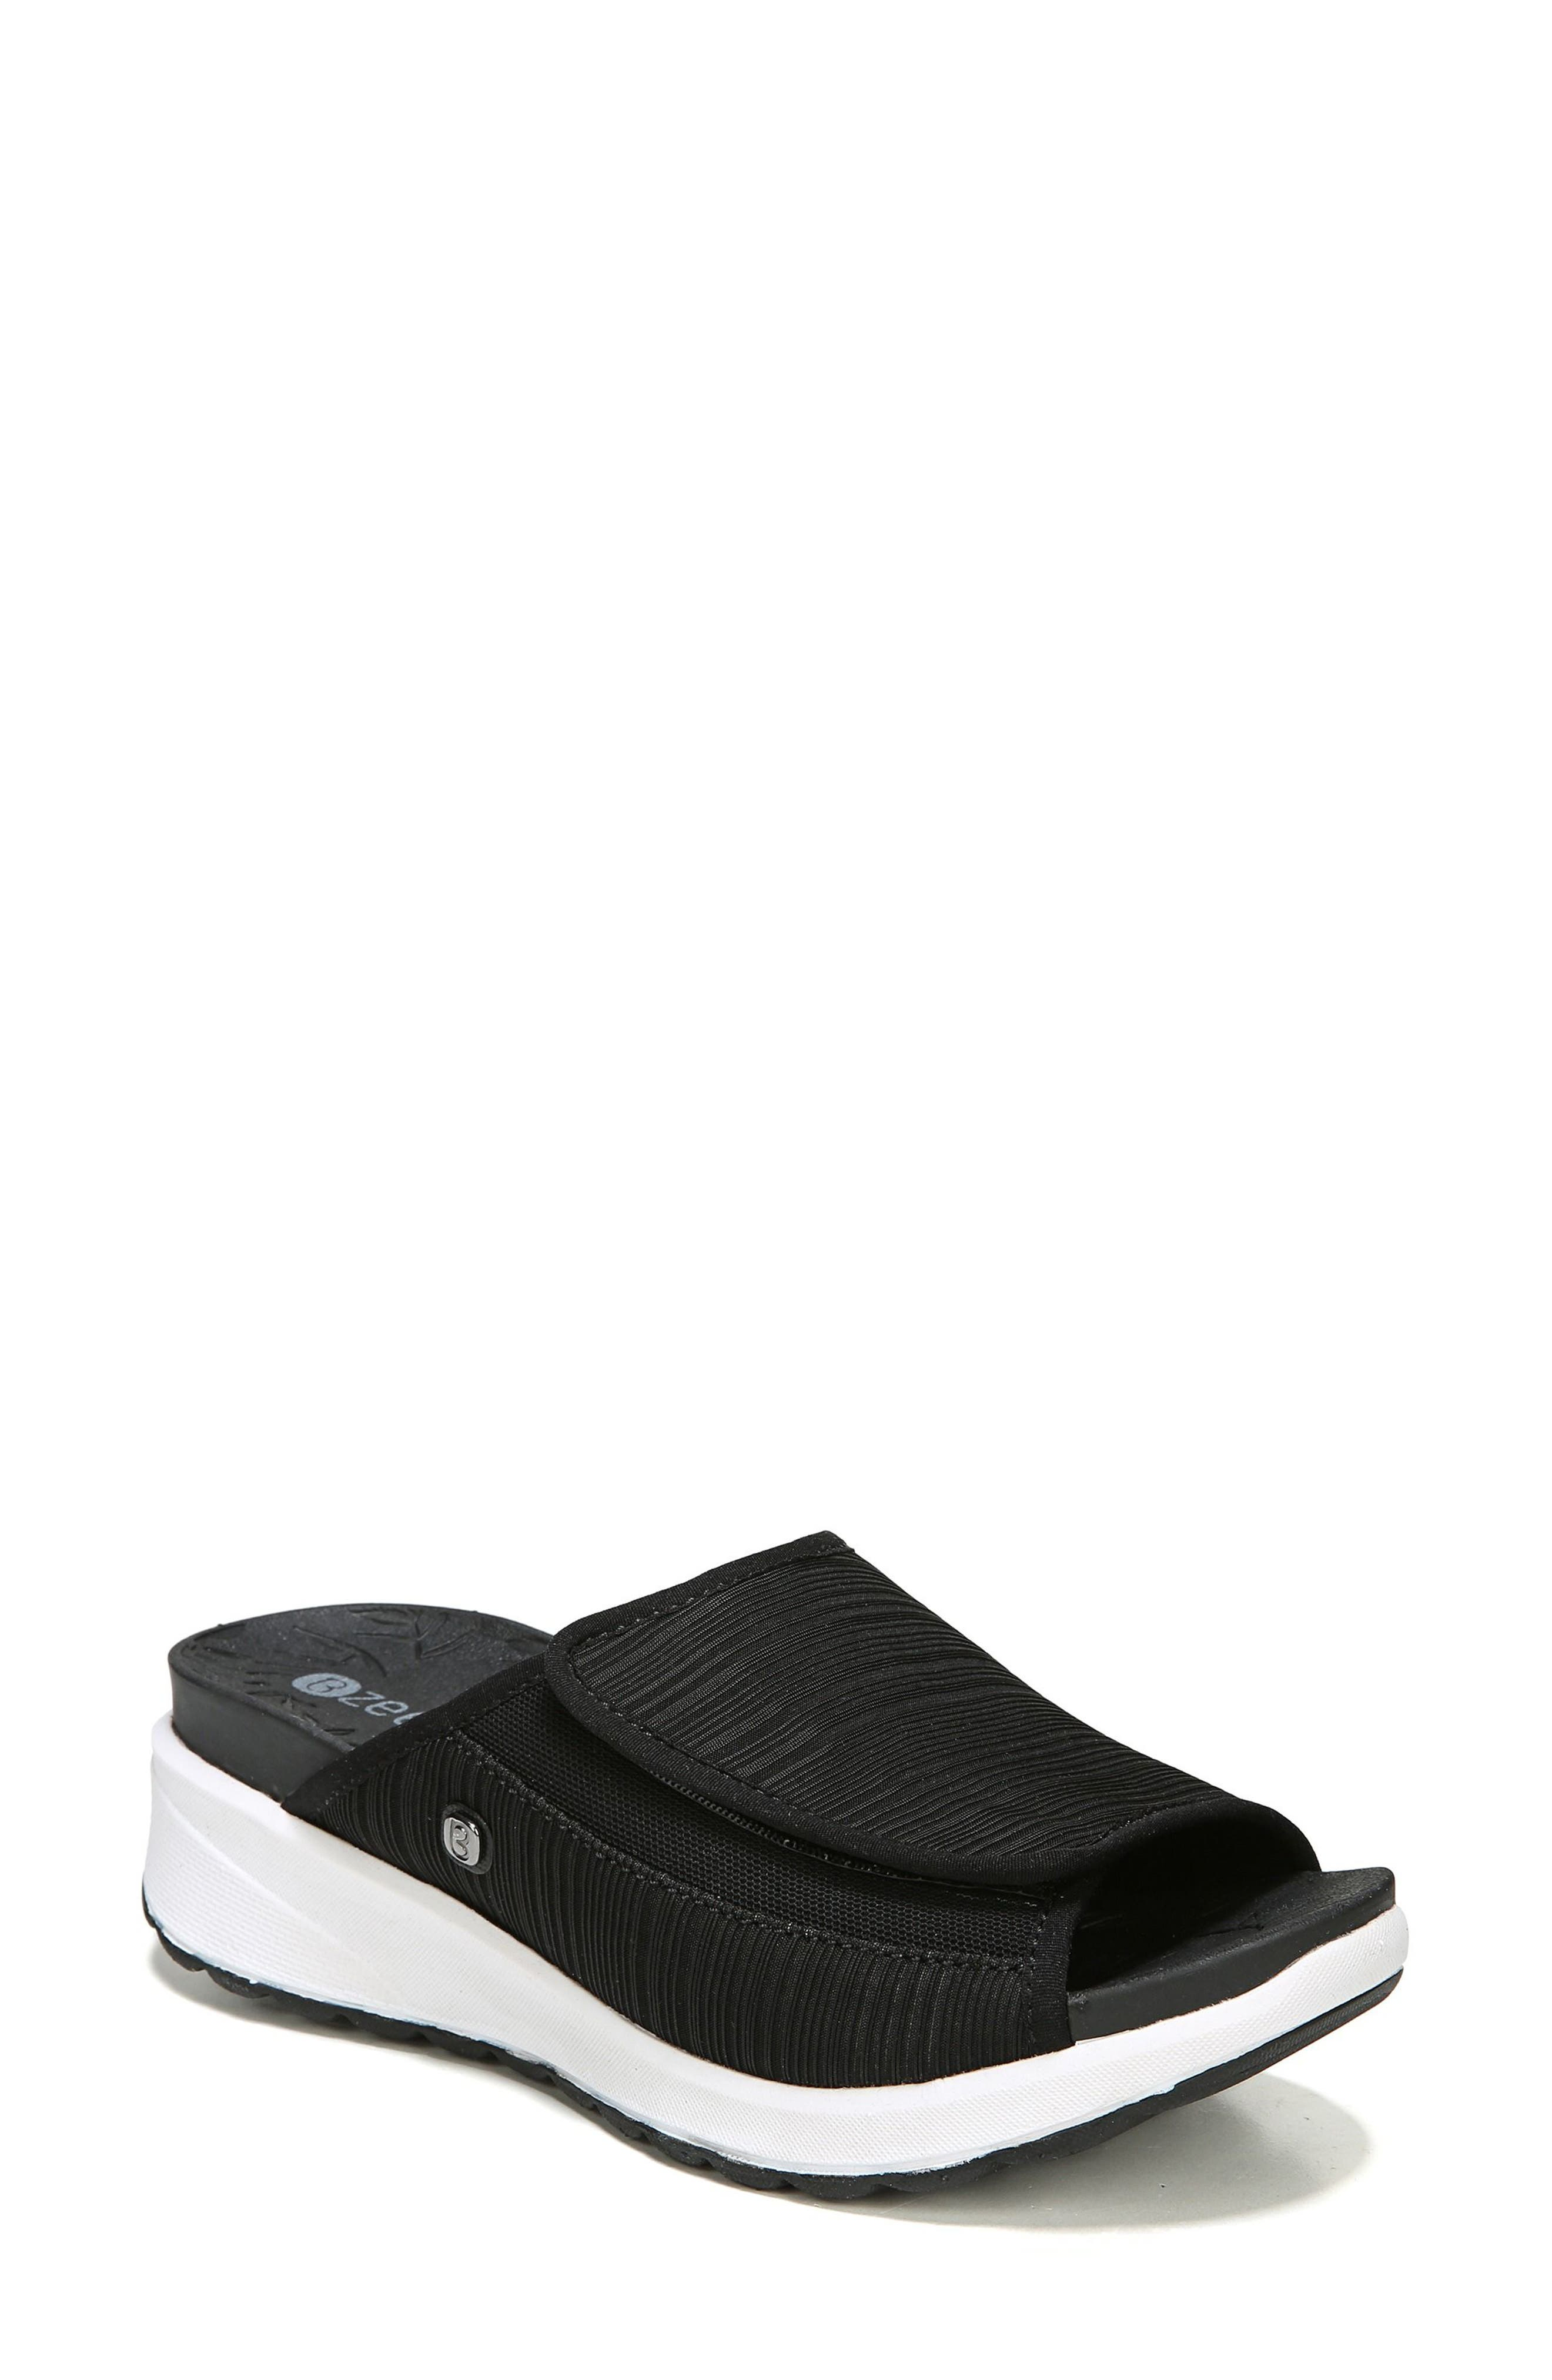 Galaxy Slide Sandal,                         Main,                         color, BLACK FABRIC